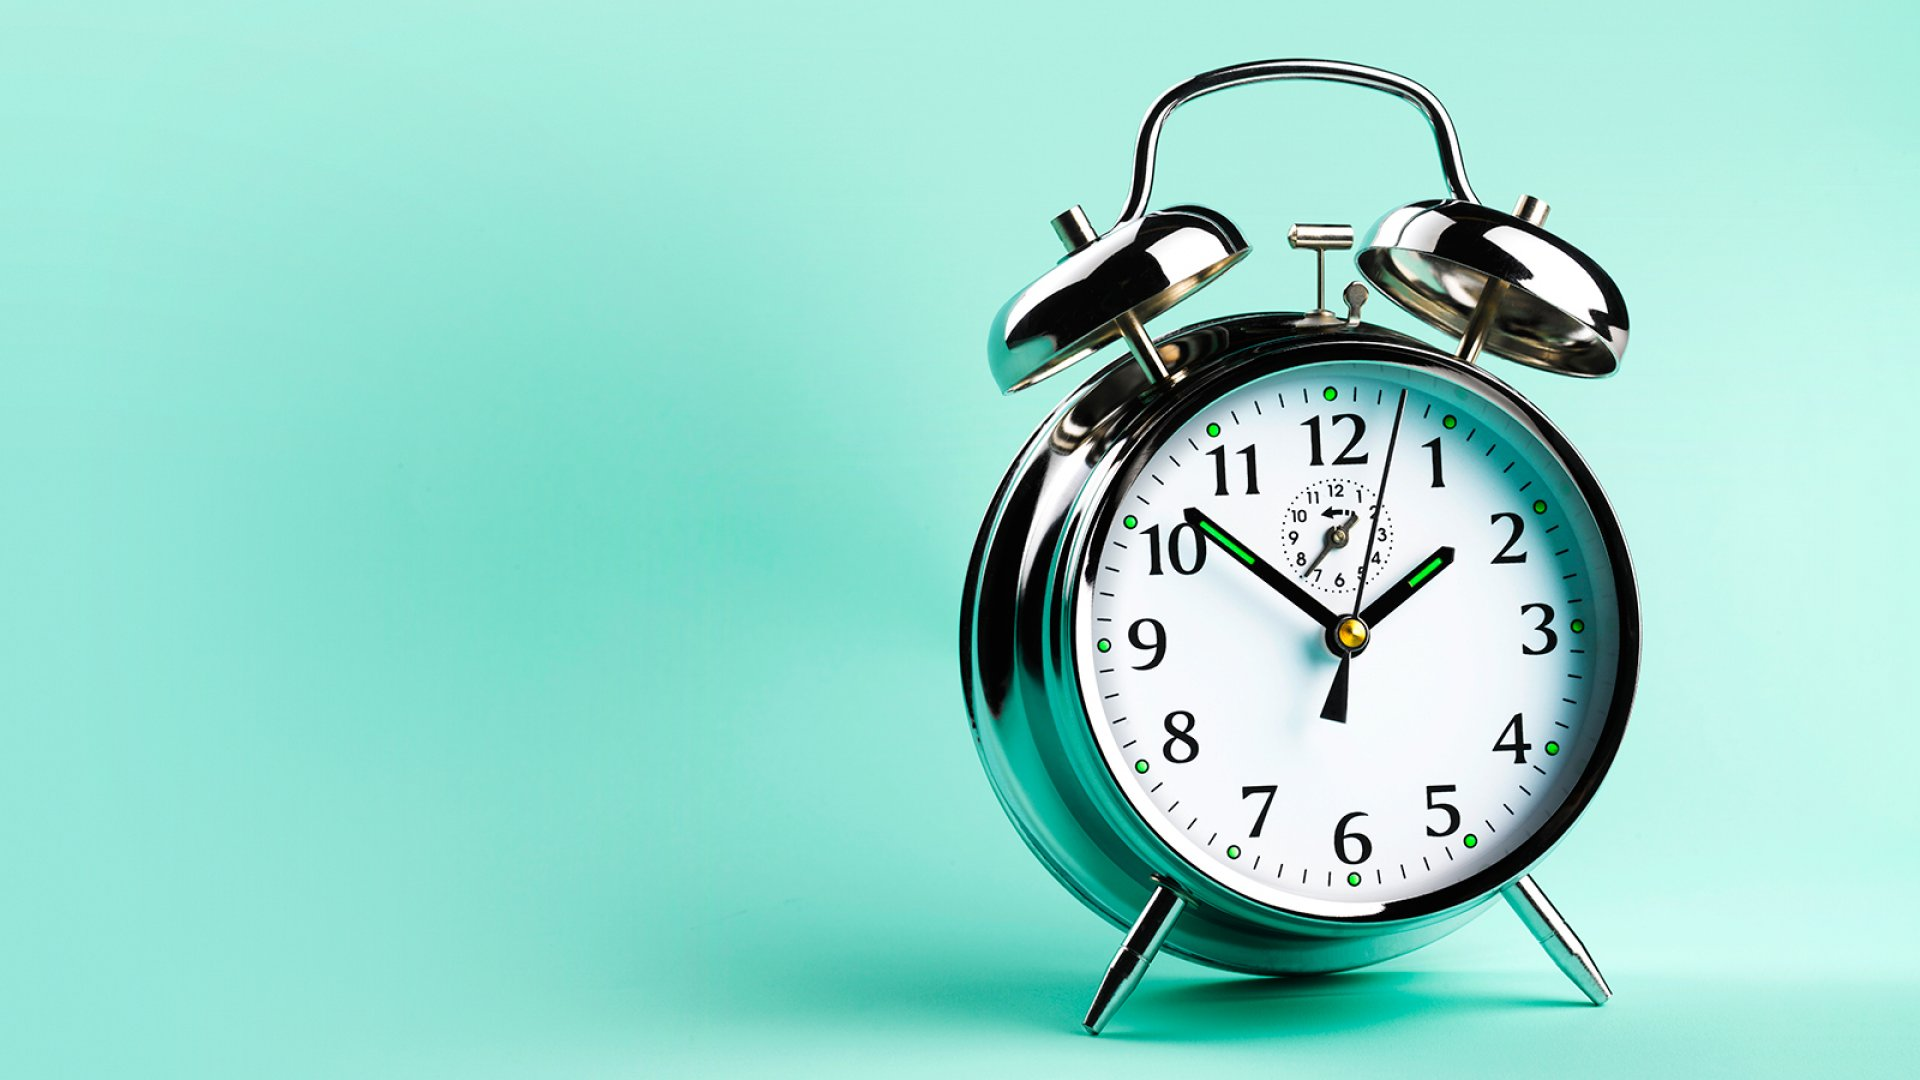 4 Simple Morning Habits That Will Improve Your Day (and Each Takes Only 5 Minutes)